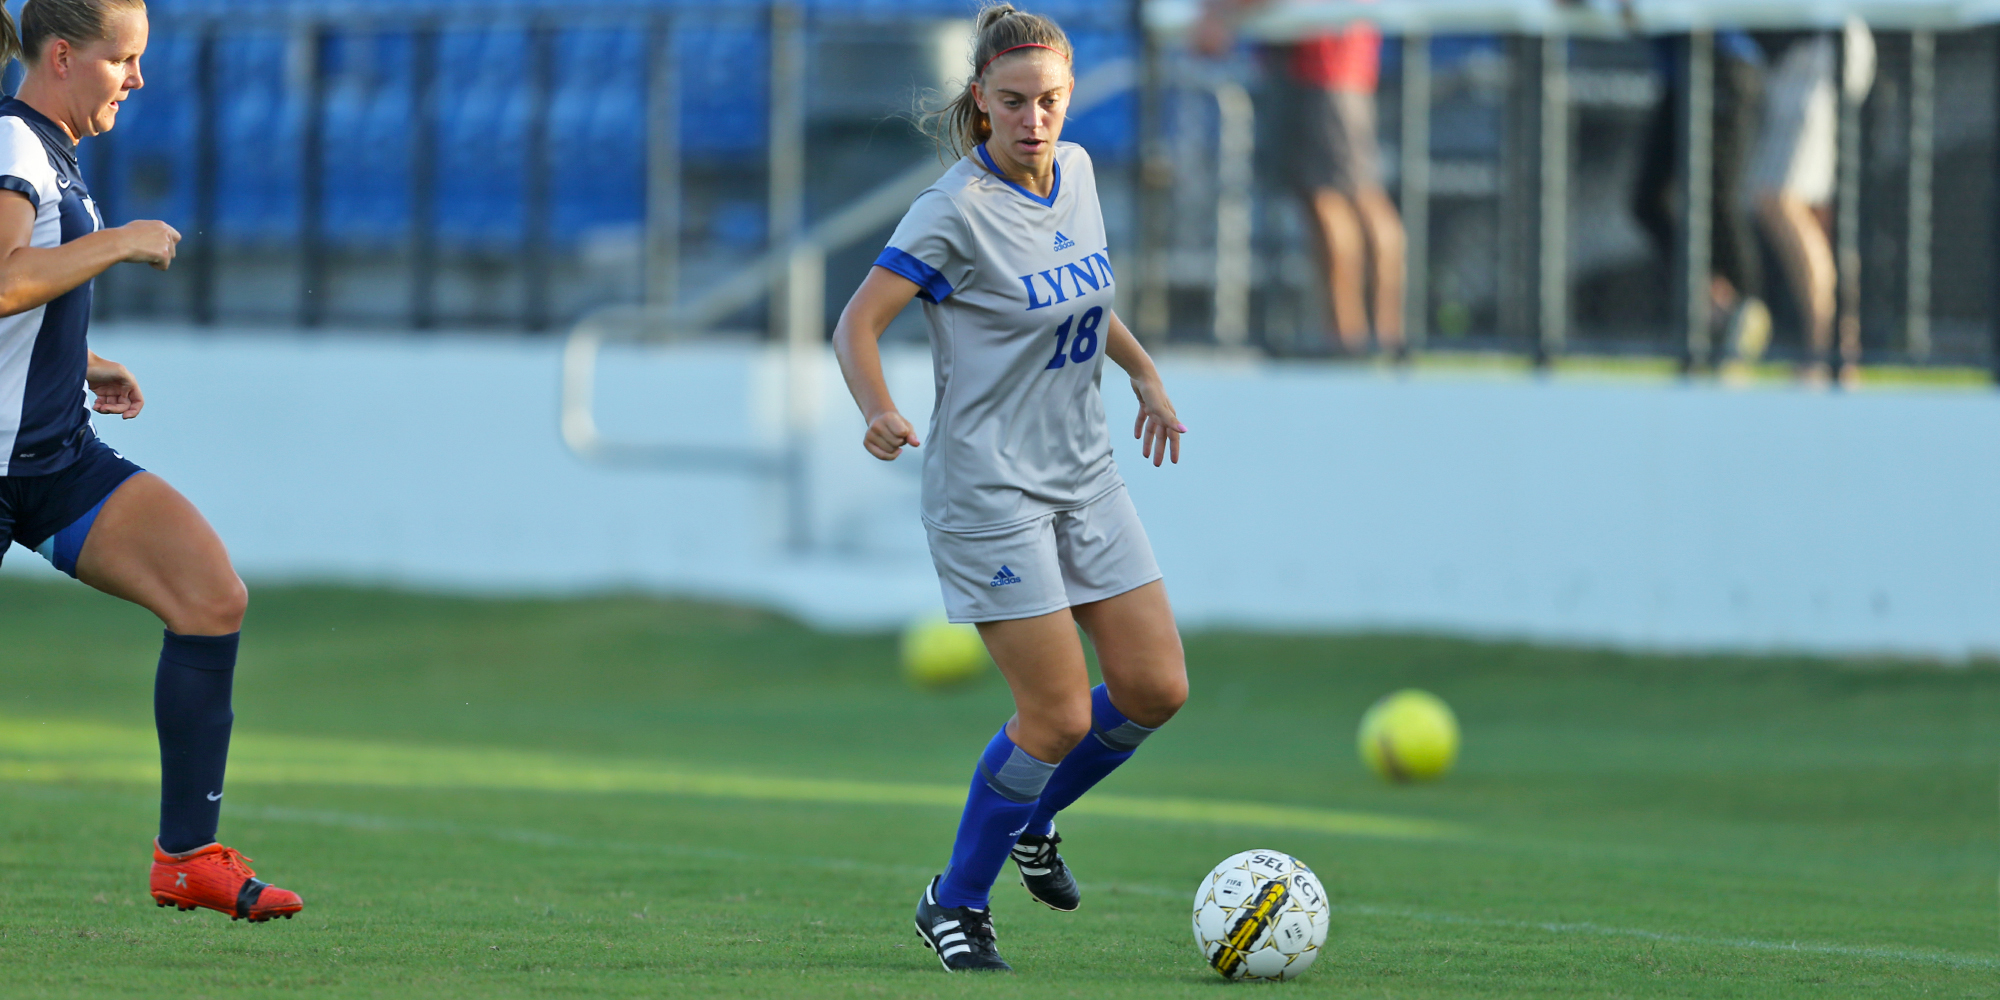 Pedretti's Late Goal Lifts Women's Soccer to Victory